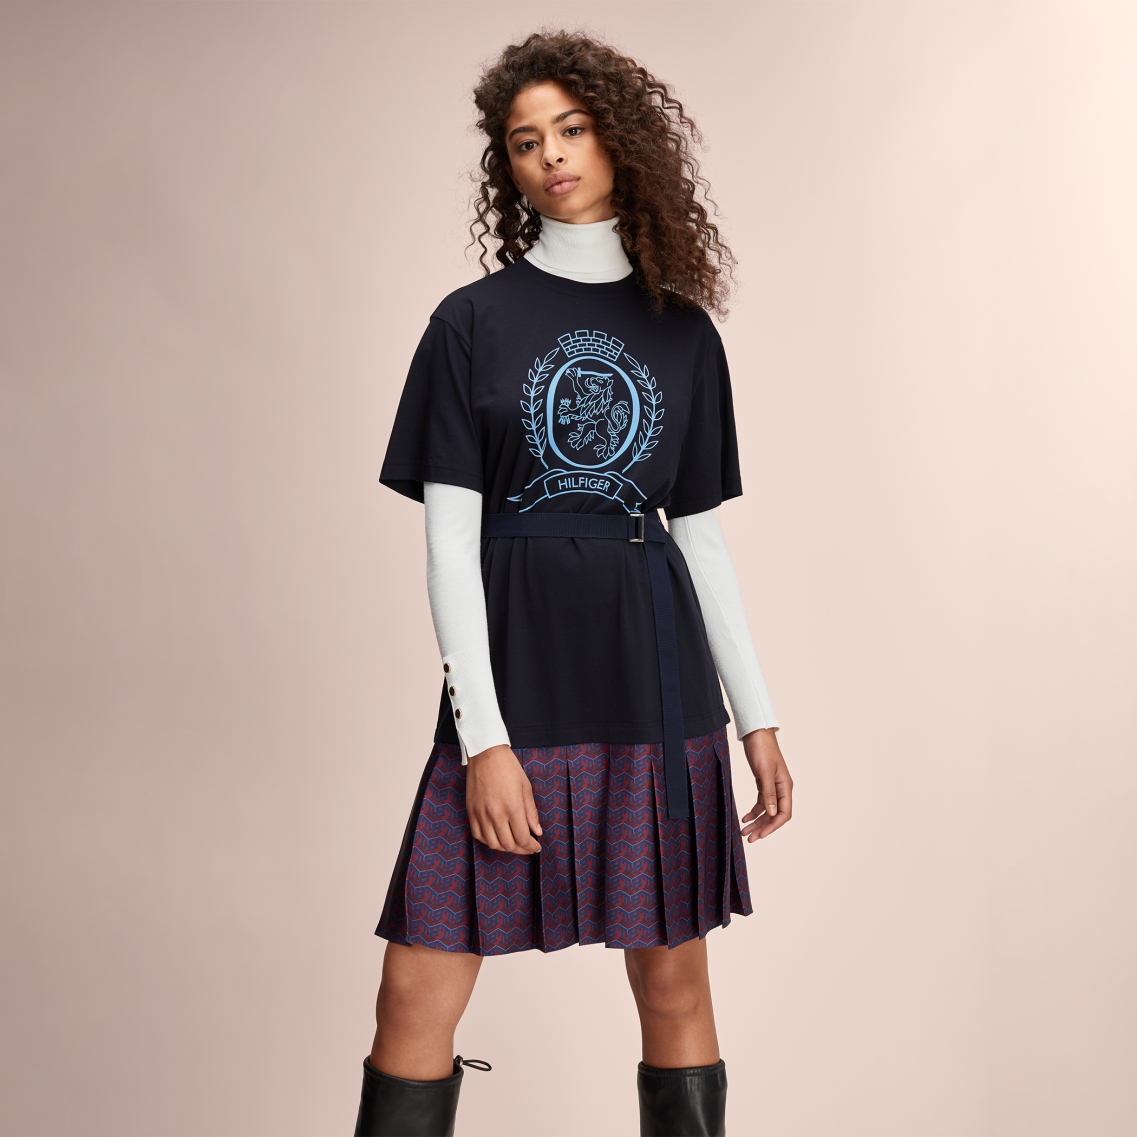 HCW MONOGRAM TSHIRT DRESS